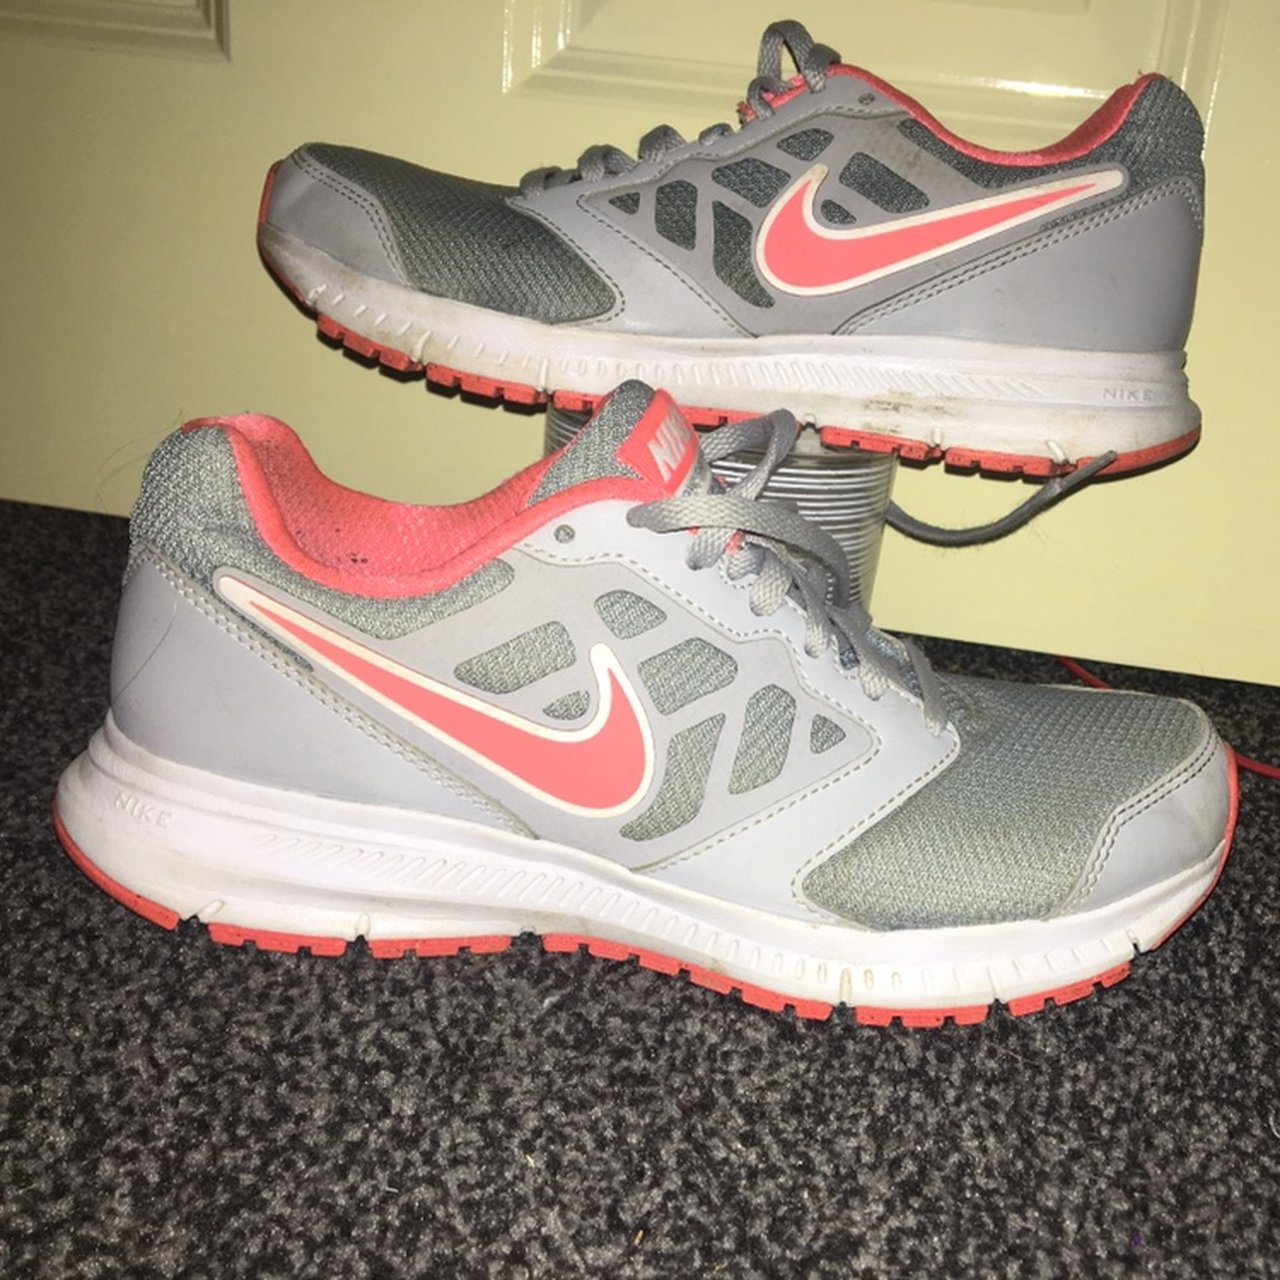 Nike Running Trainer Listed On Depop By Emilyj77